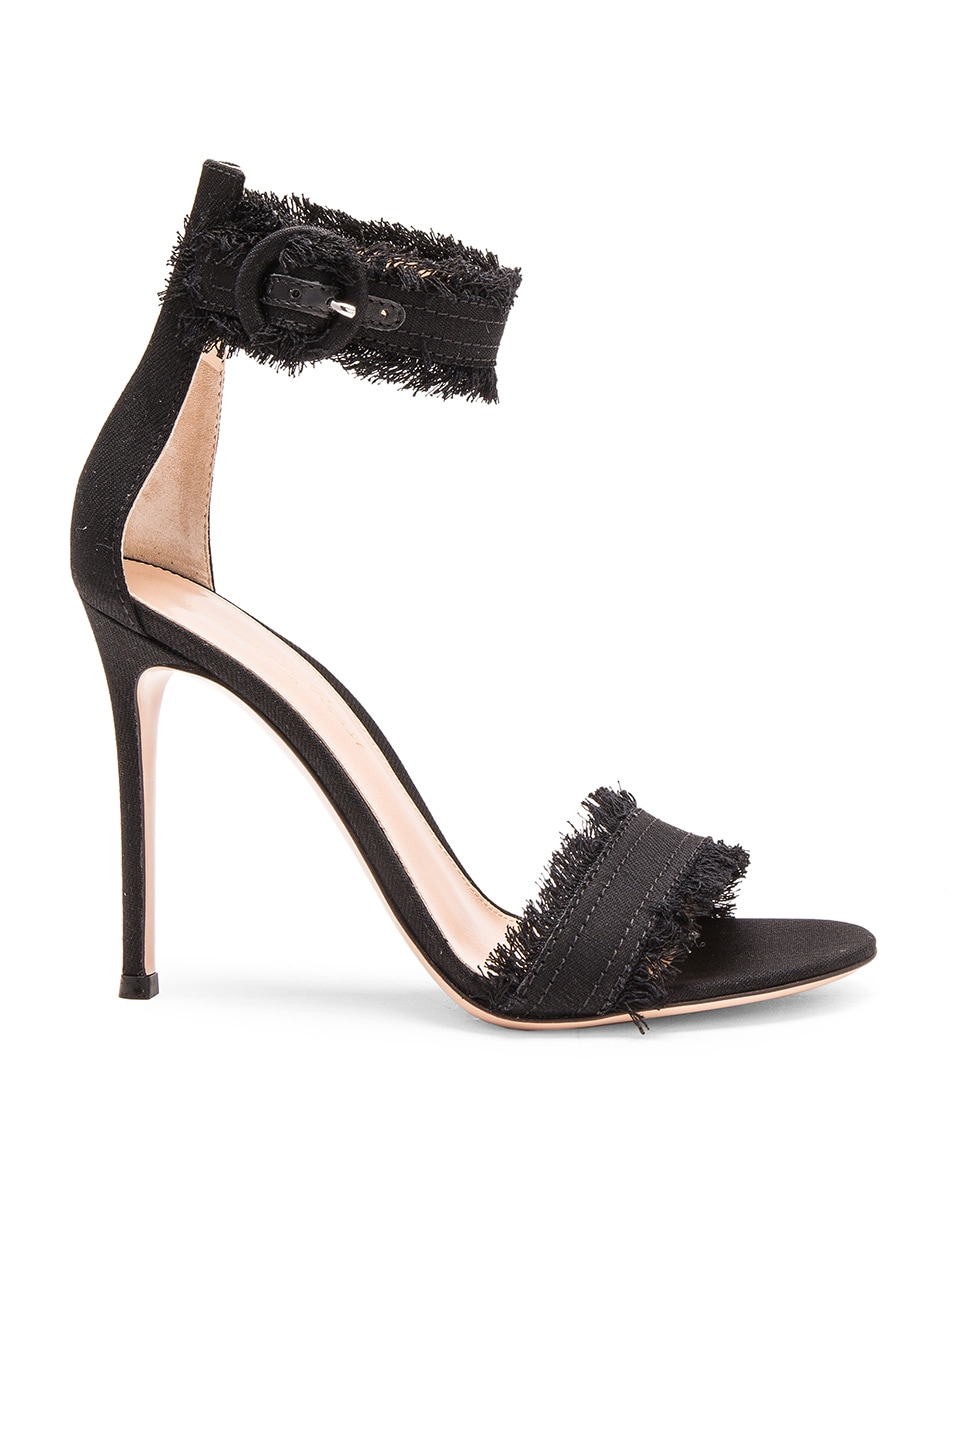 Gianvito Rossi Denim Ankle-Strap Sandals